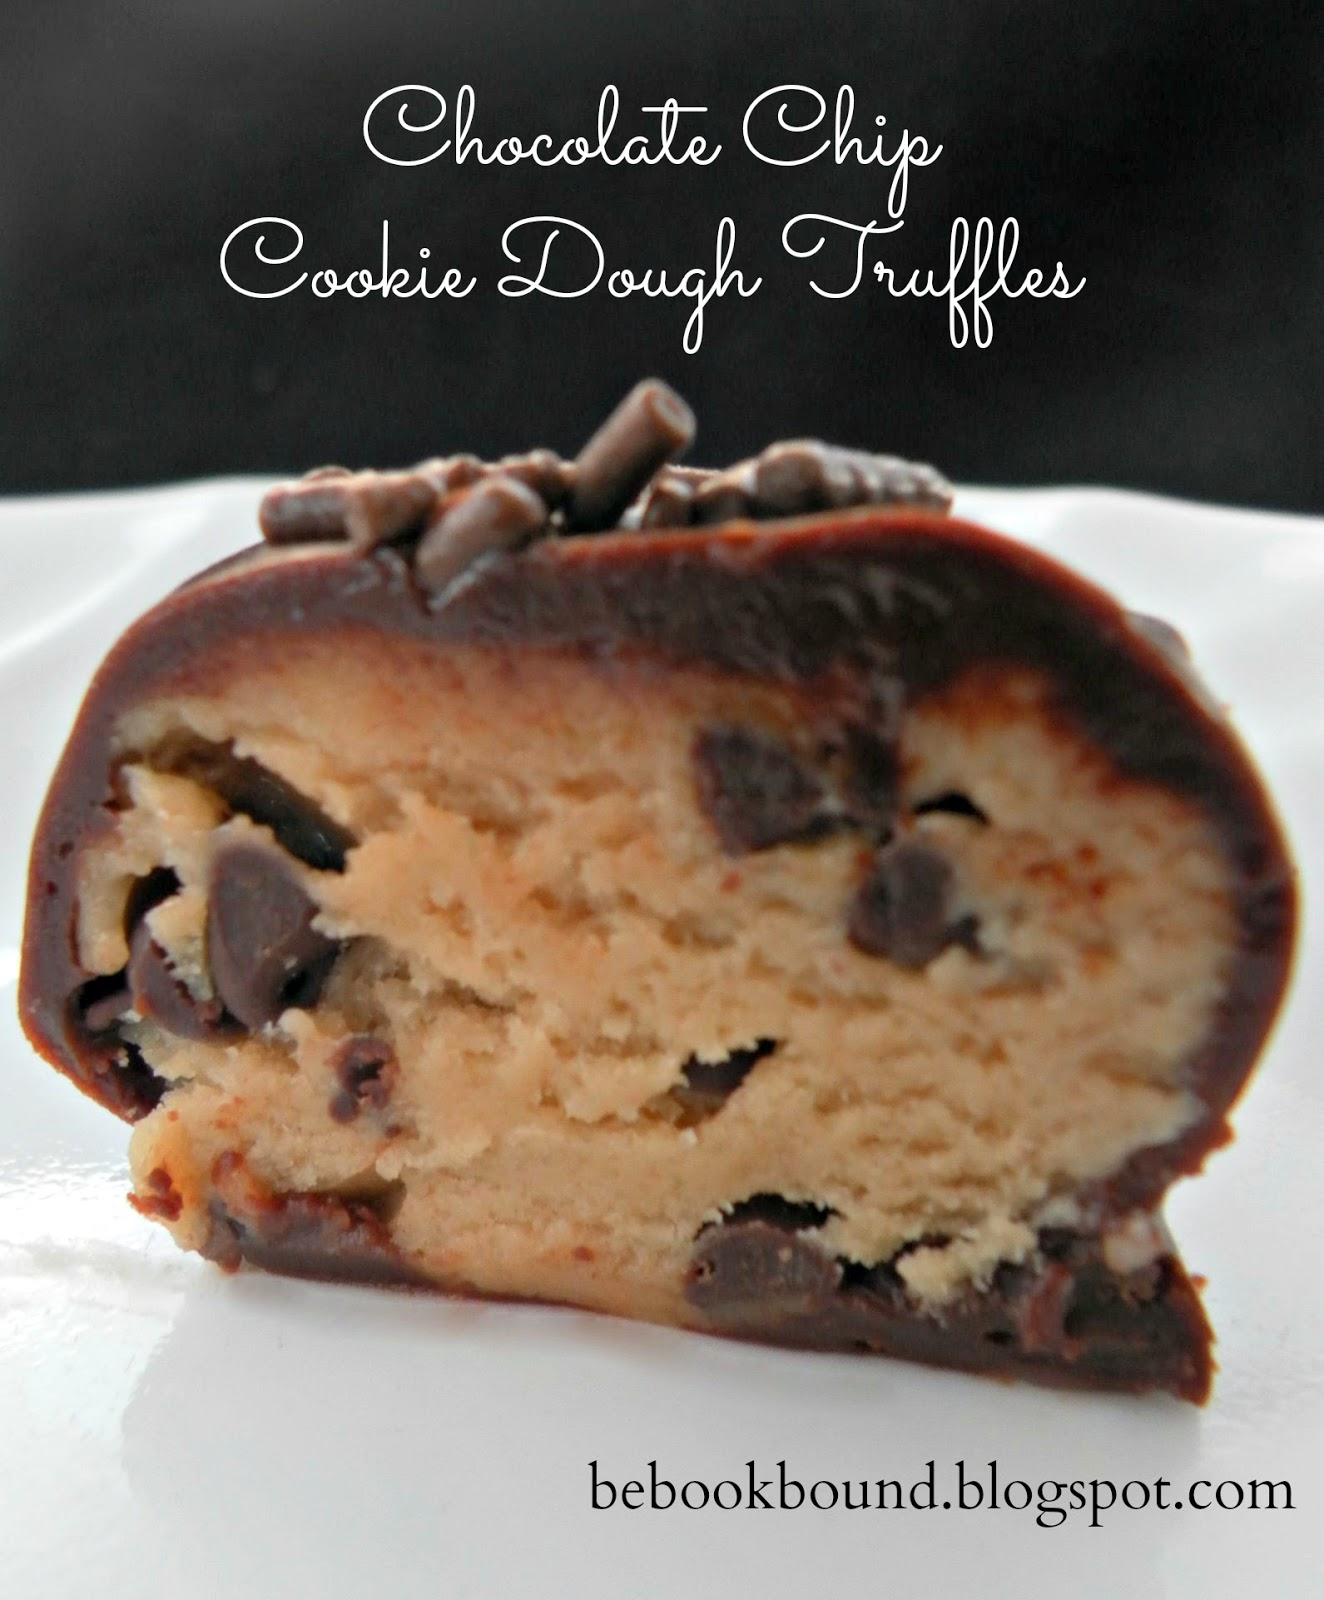 Here is a recipe for Chocolate Chip Cookie Dough Truffles.